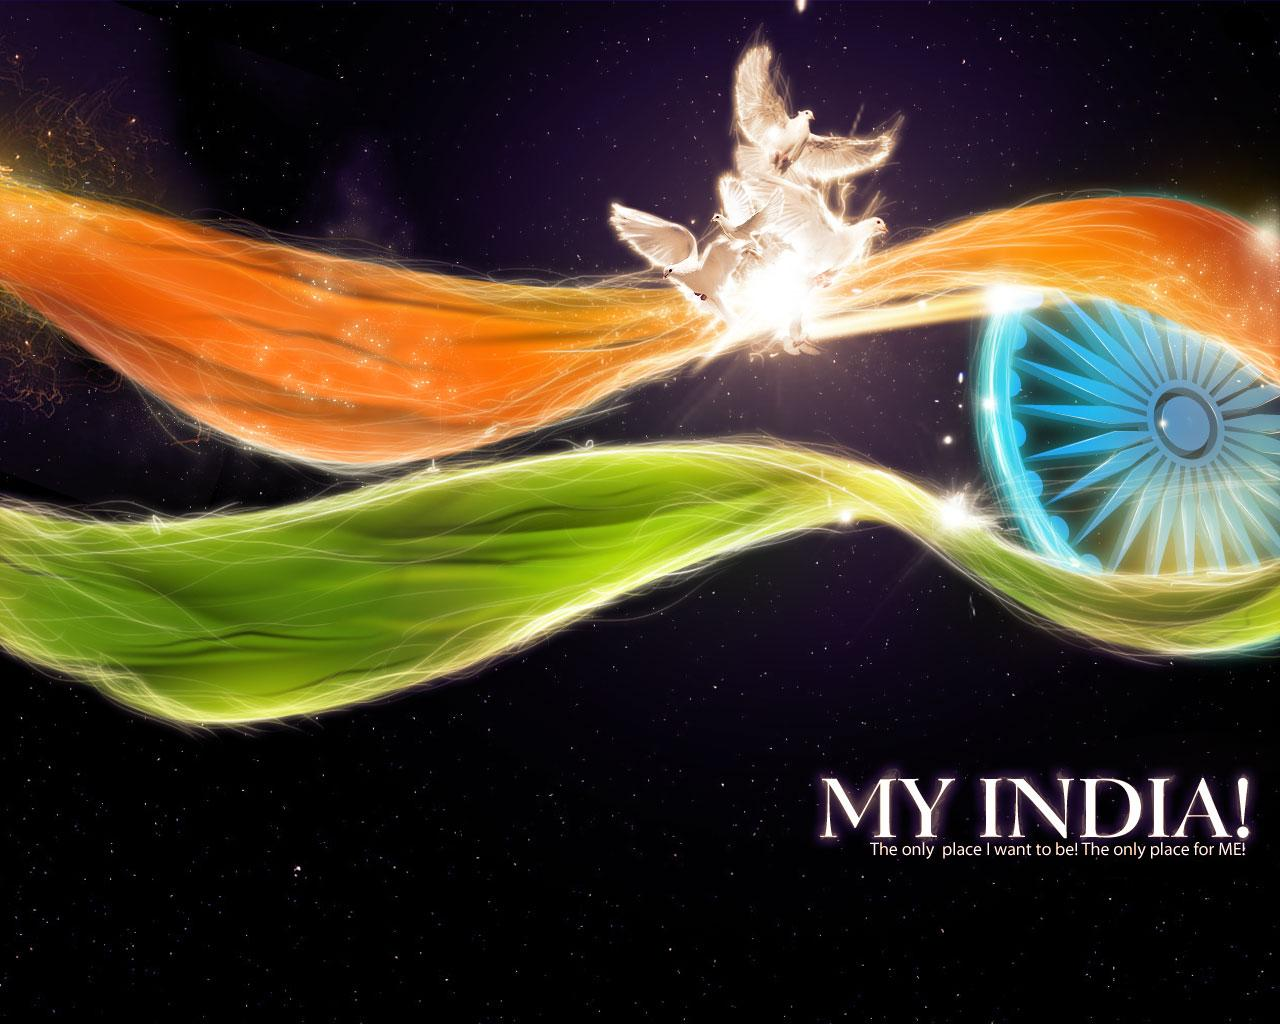 http://4.bp.blogspot.com/-07NQ0gtRMrk/UOcidwELYNI/AAAAAAAAAy8/6nO6xF5T1nU/s1600/republic-day-of-india-hd-wallpaper.jpg